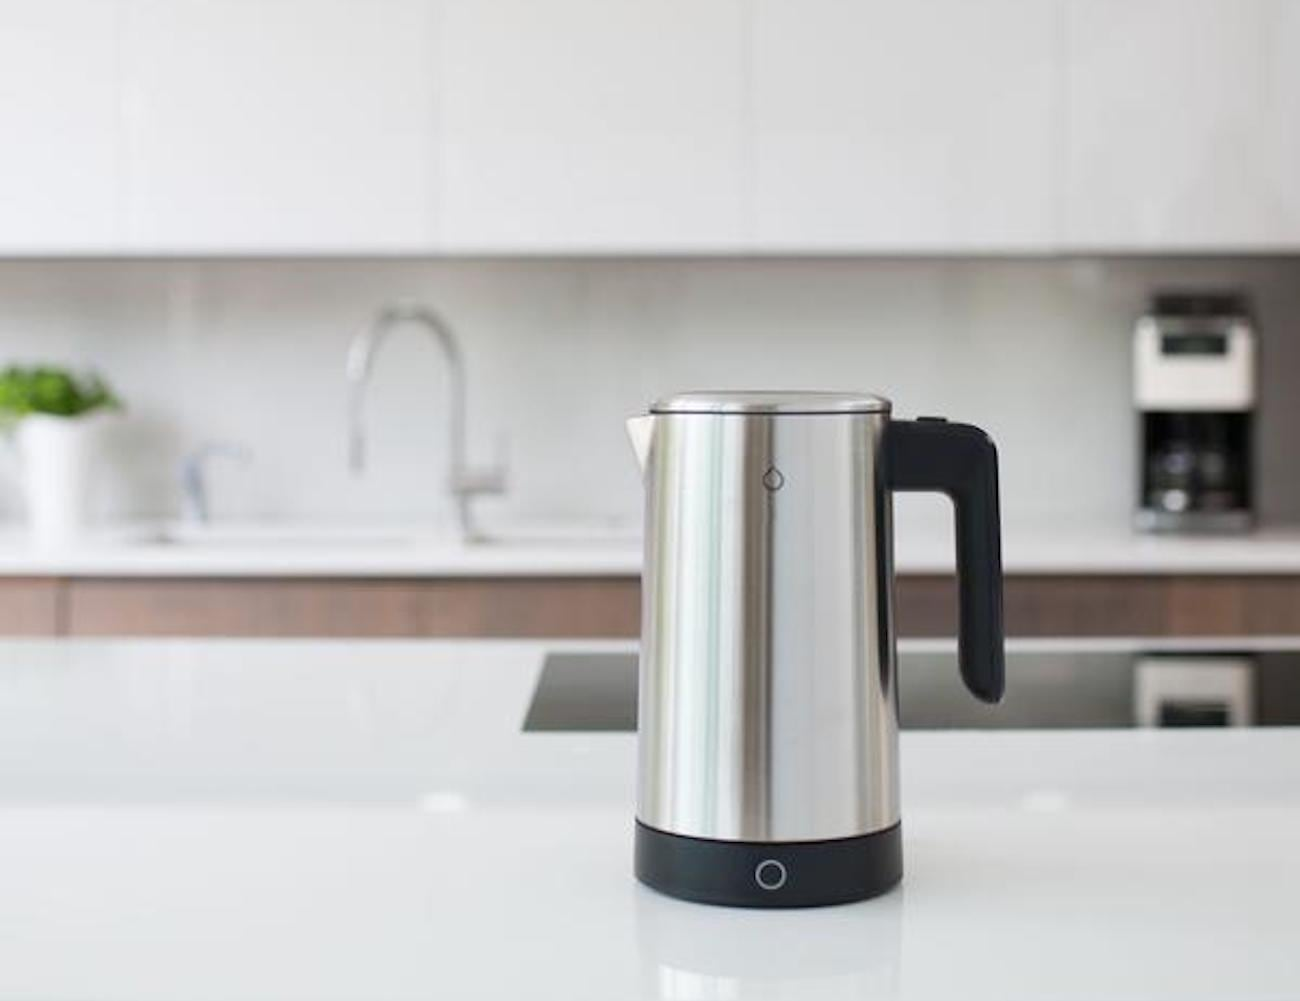 Smarter 3rd Gen iKettle Smart Electric Kettle